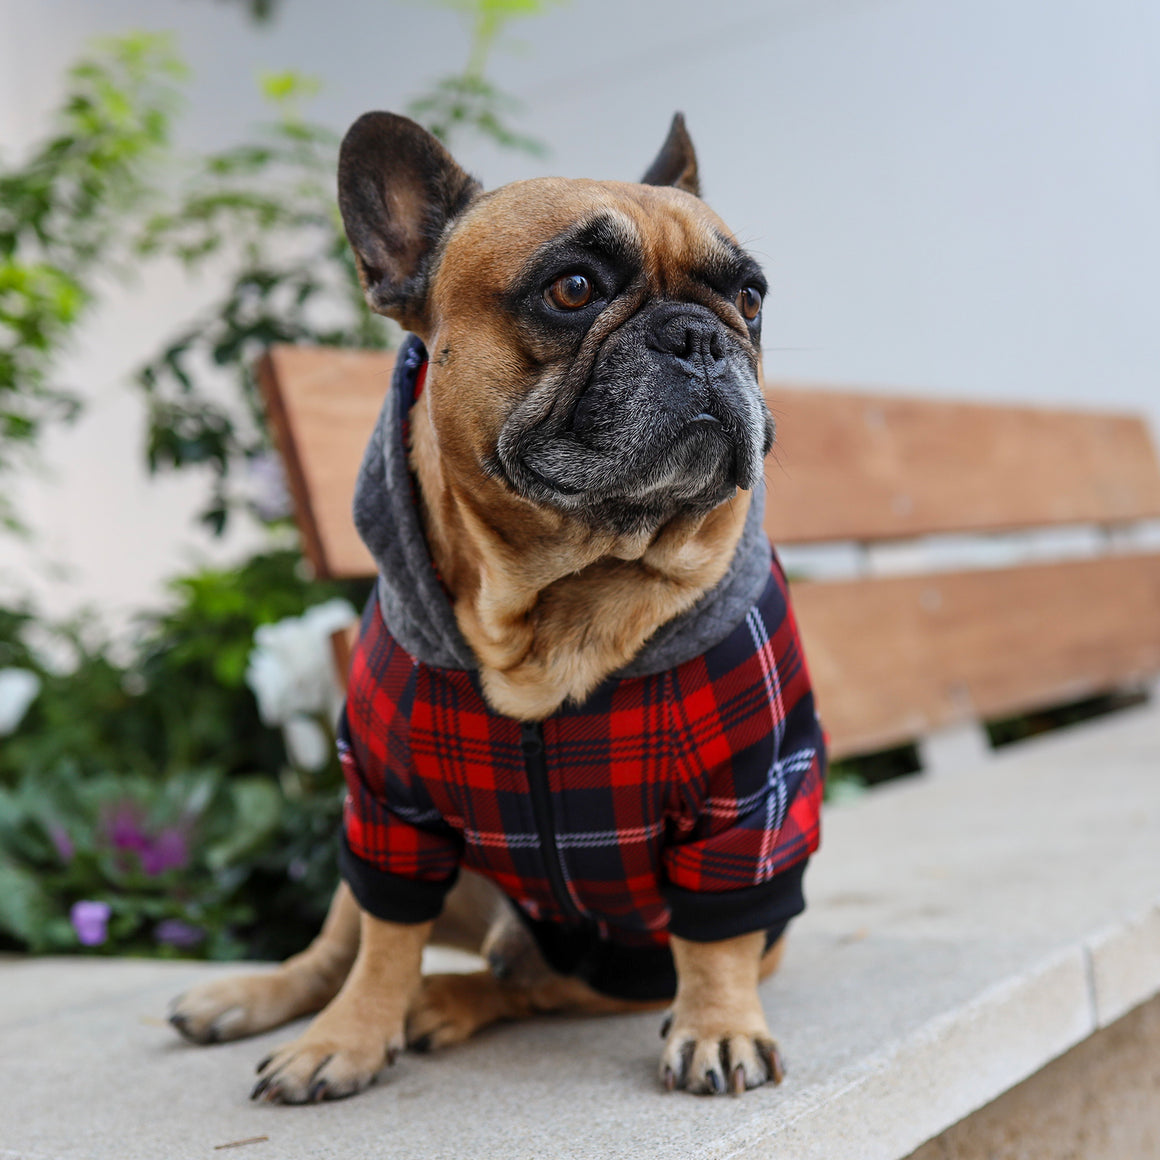 Frenchie Dog Hoodie - Lumberjack - Frenchie Bulldog - Shop Harnesses for French Bulldogs - Shop French Bulldog Harness - Harnesses for Pugs